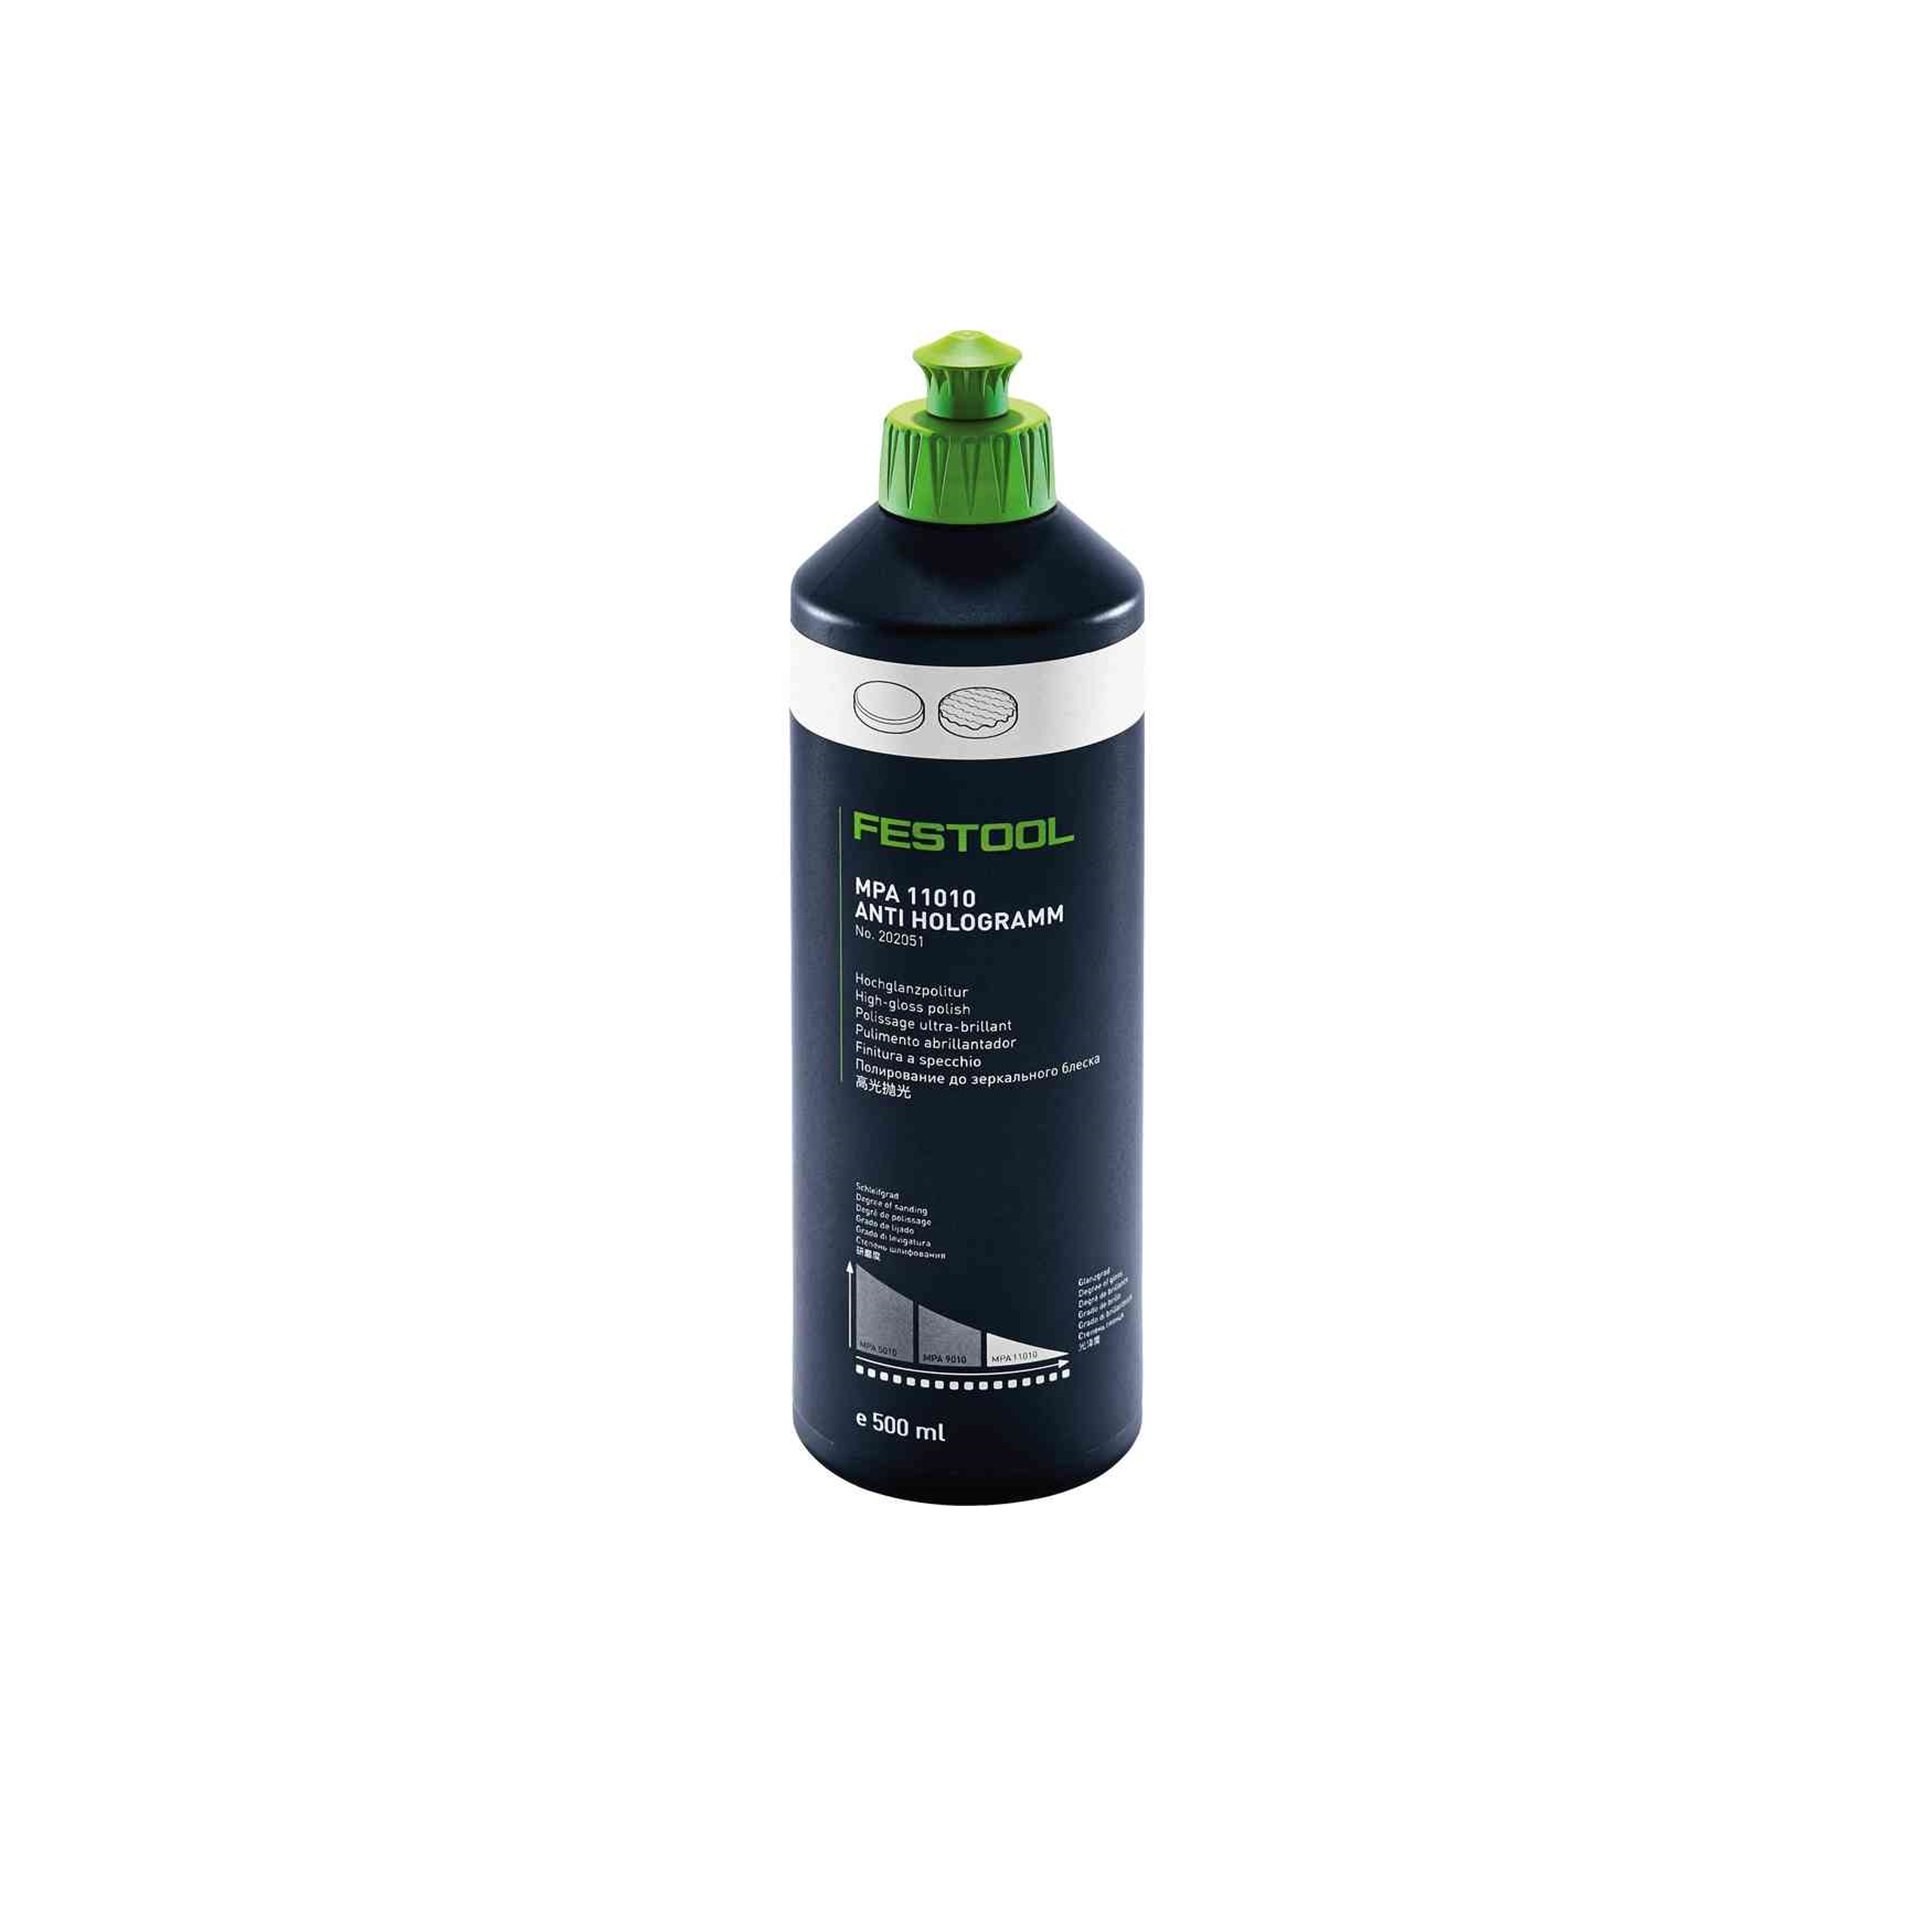 Image of Festool Polishing Agent (MPA 11010)